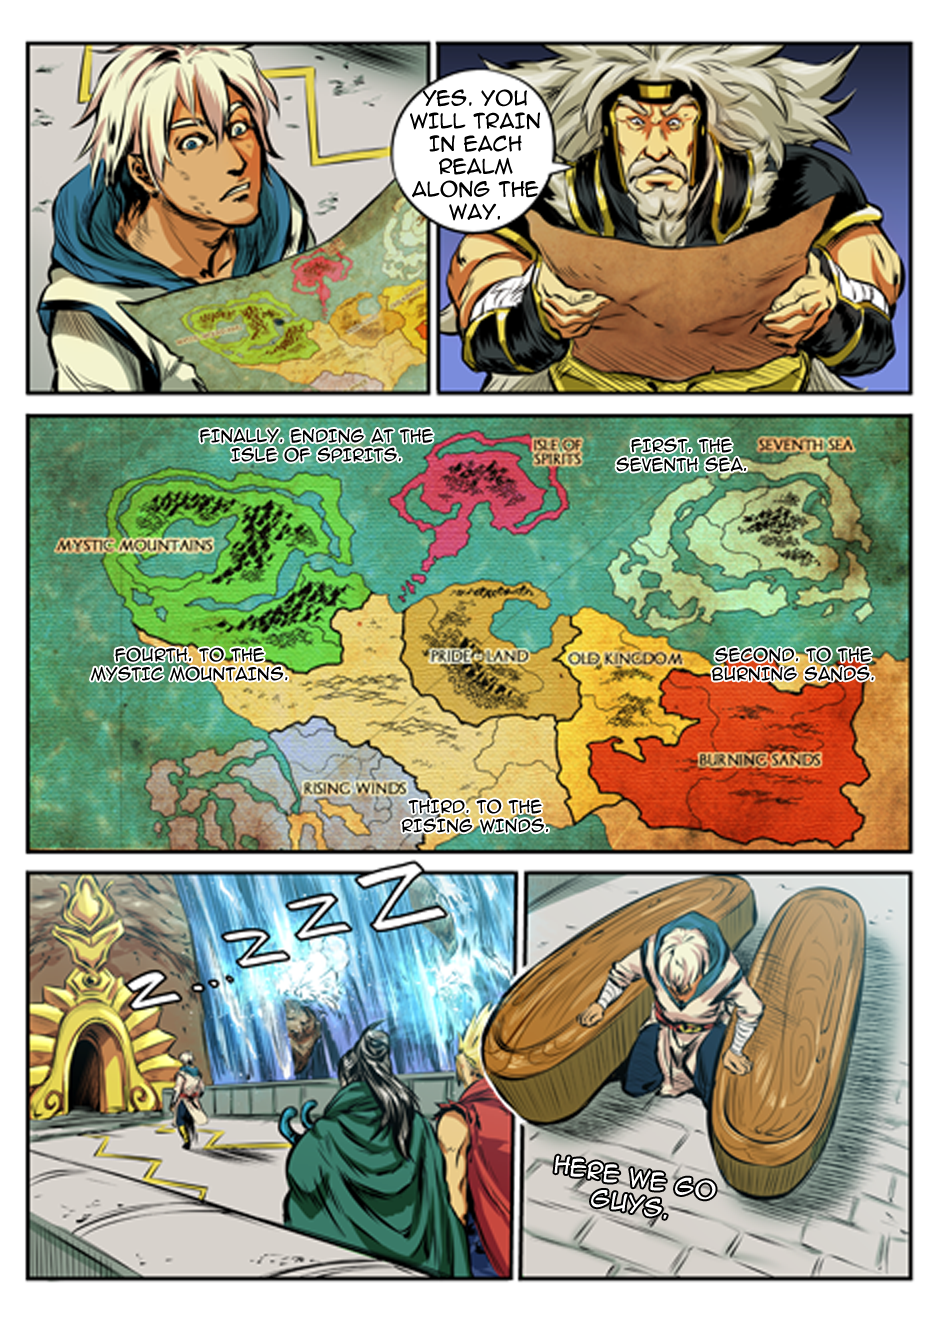 Infinite-The-Journey-20.png